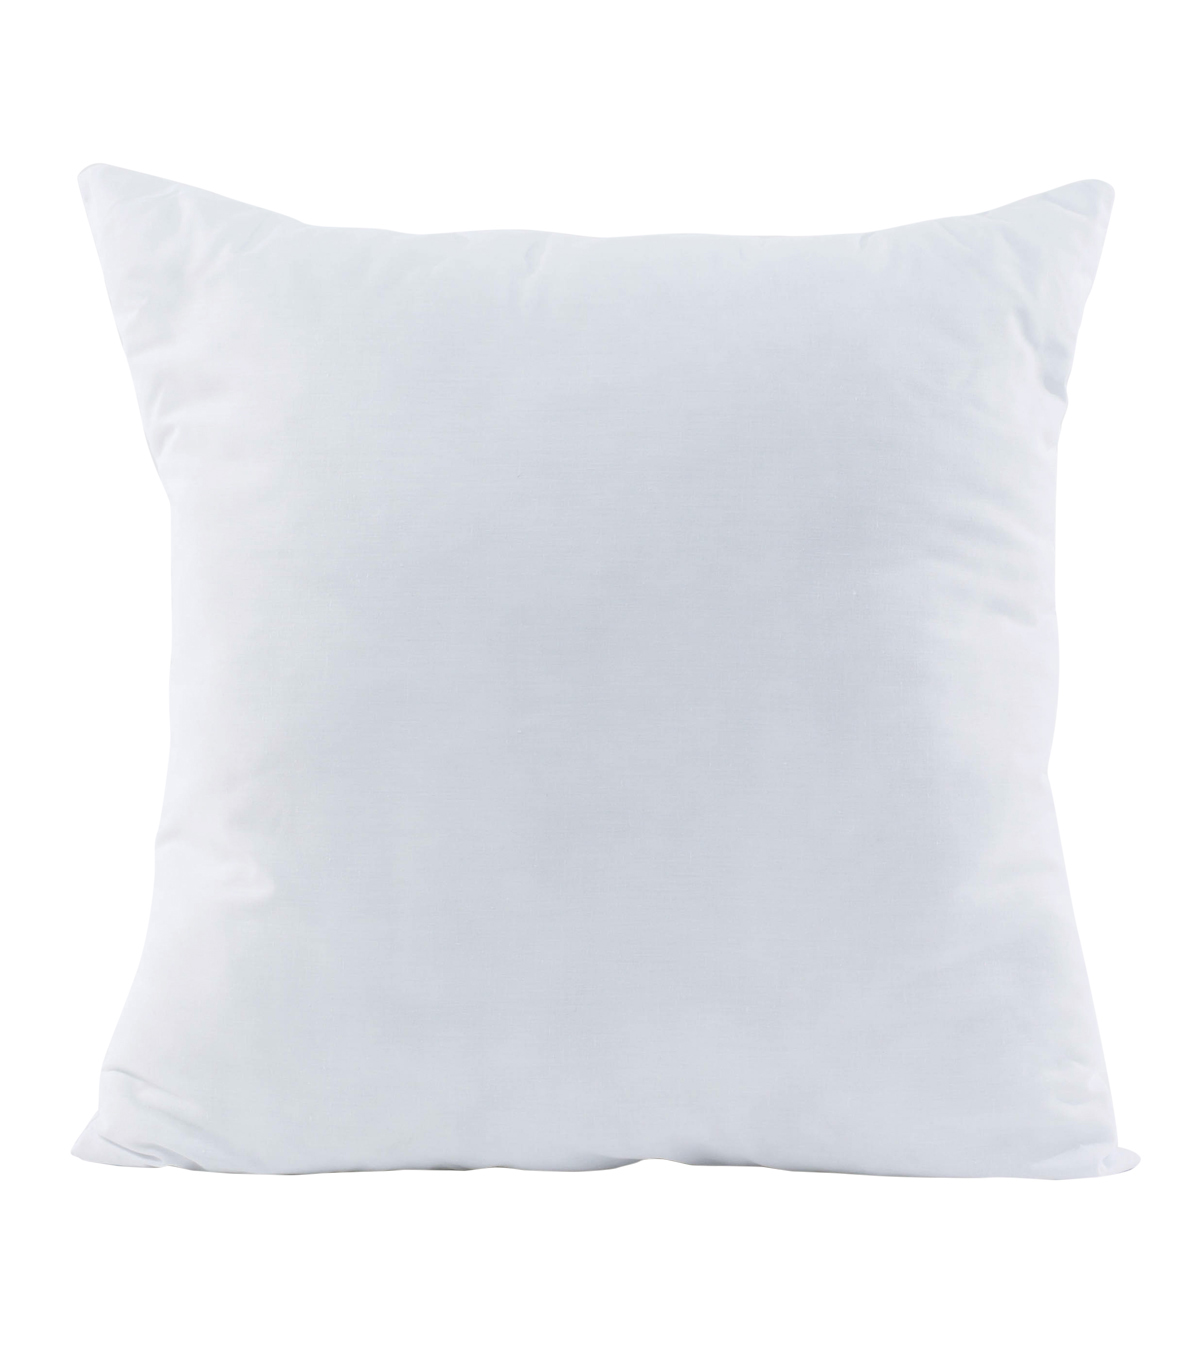 Poly-Fil Premier 20x20\u0022 Accent Pillow Insert